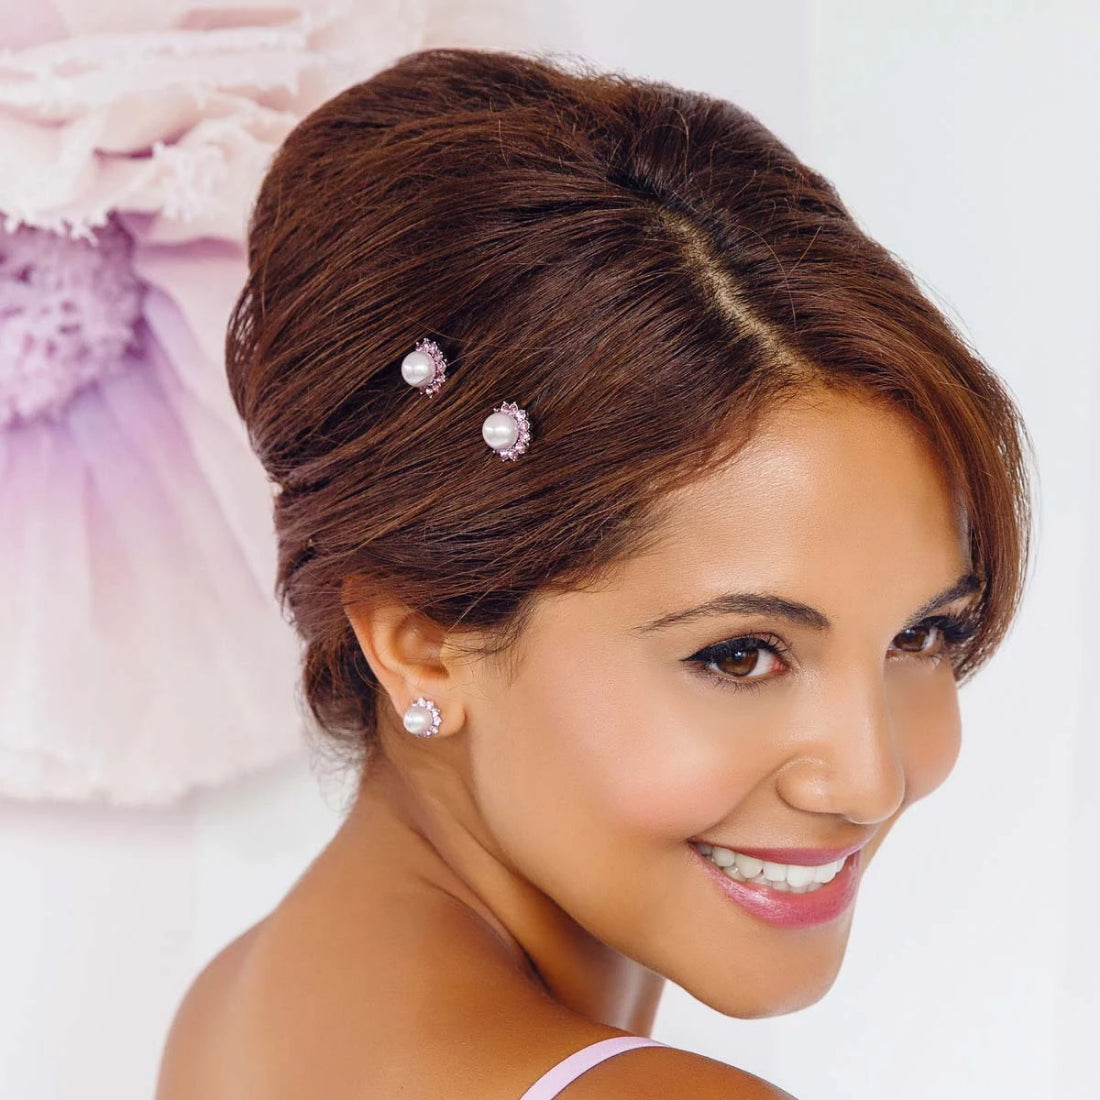 Haze of Amethyst Wedding Hair Pins shown on our model bride